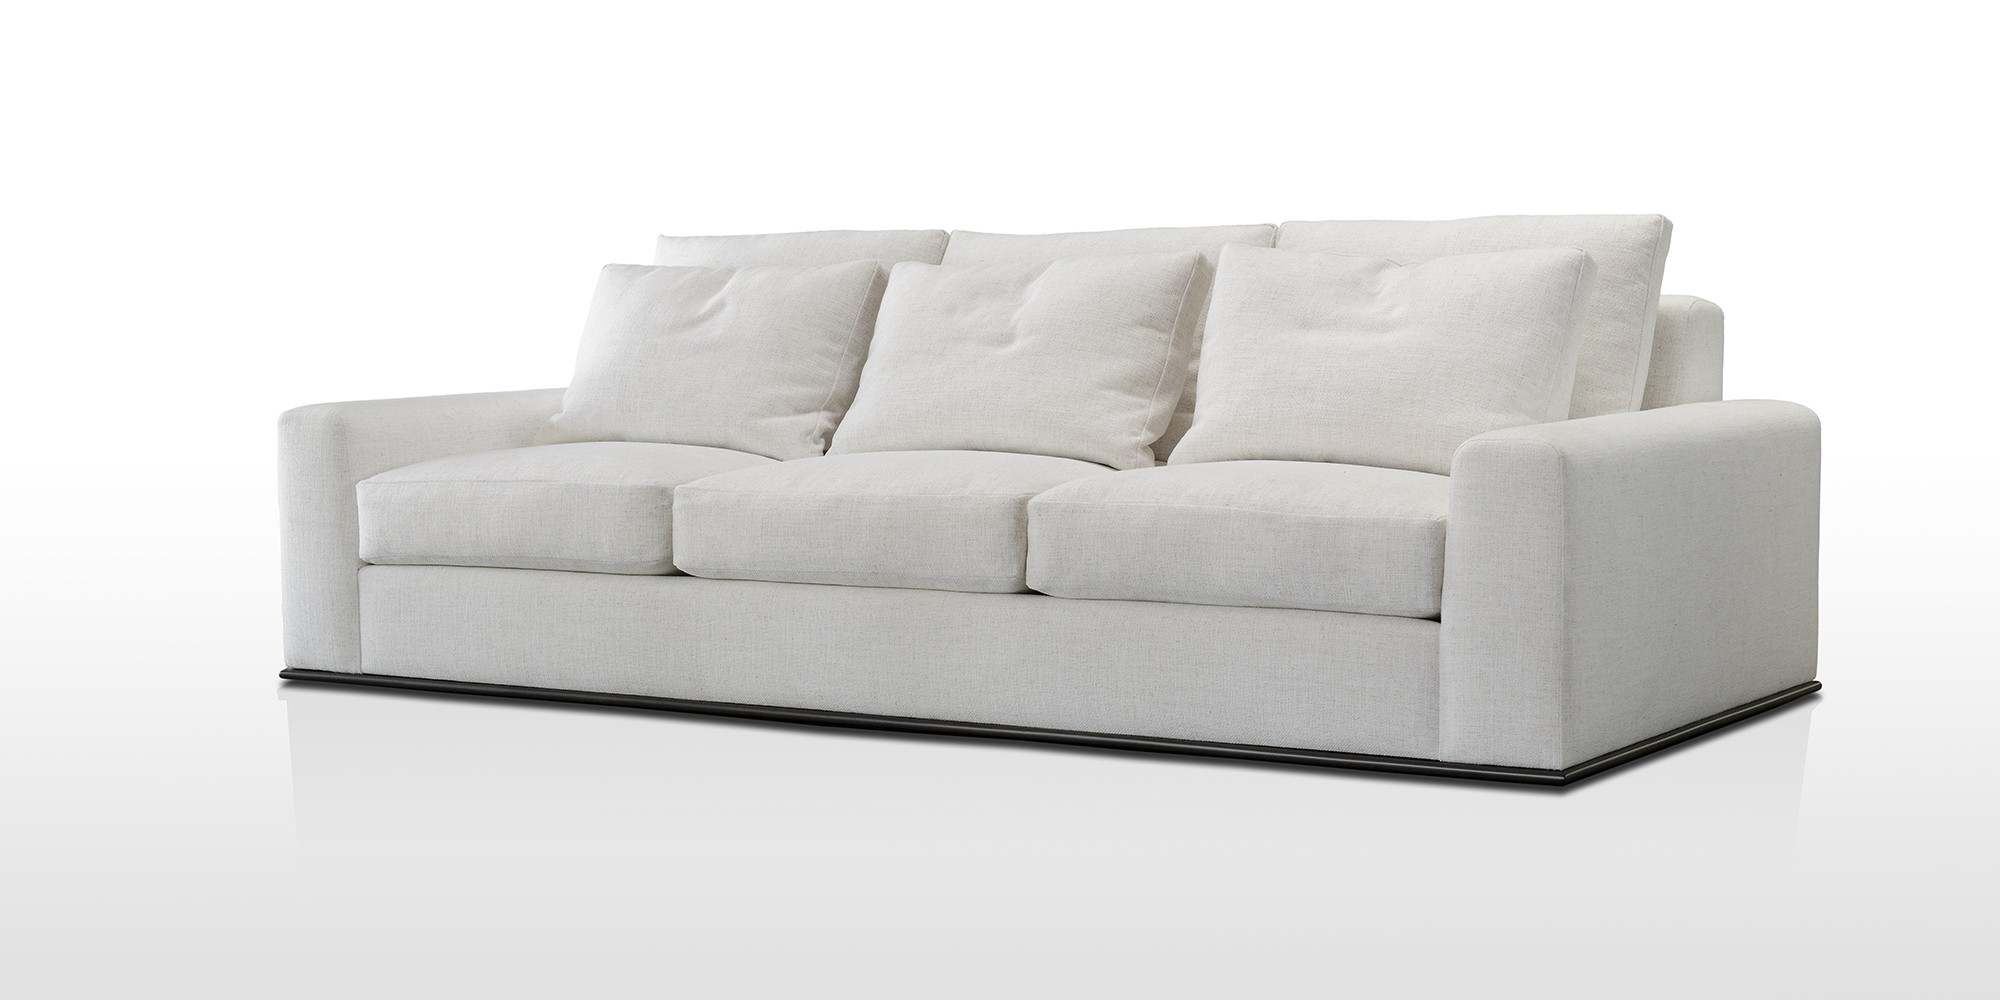 Nathan Anthony sofa Cute sofas Archives Nathan Anthony Furniture Wallpaper